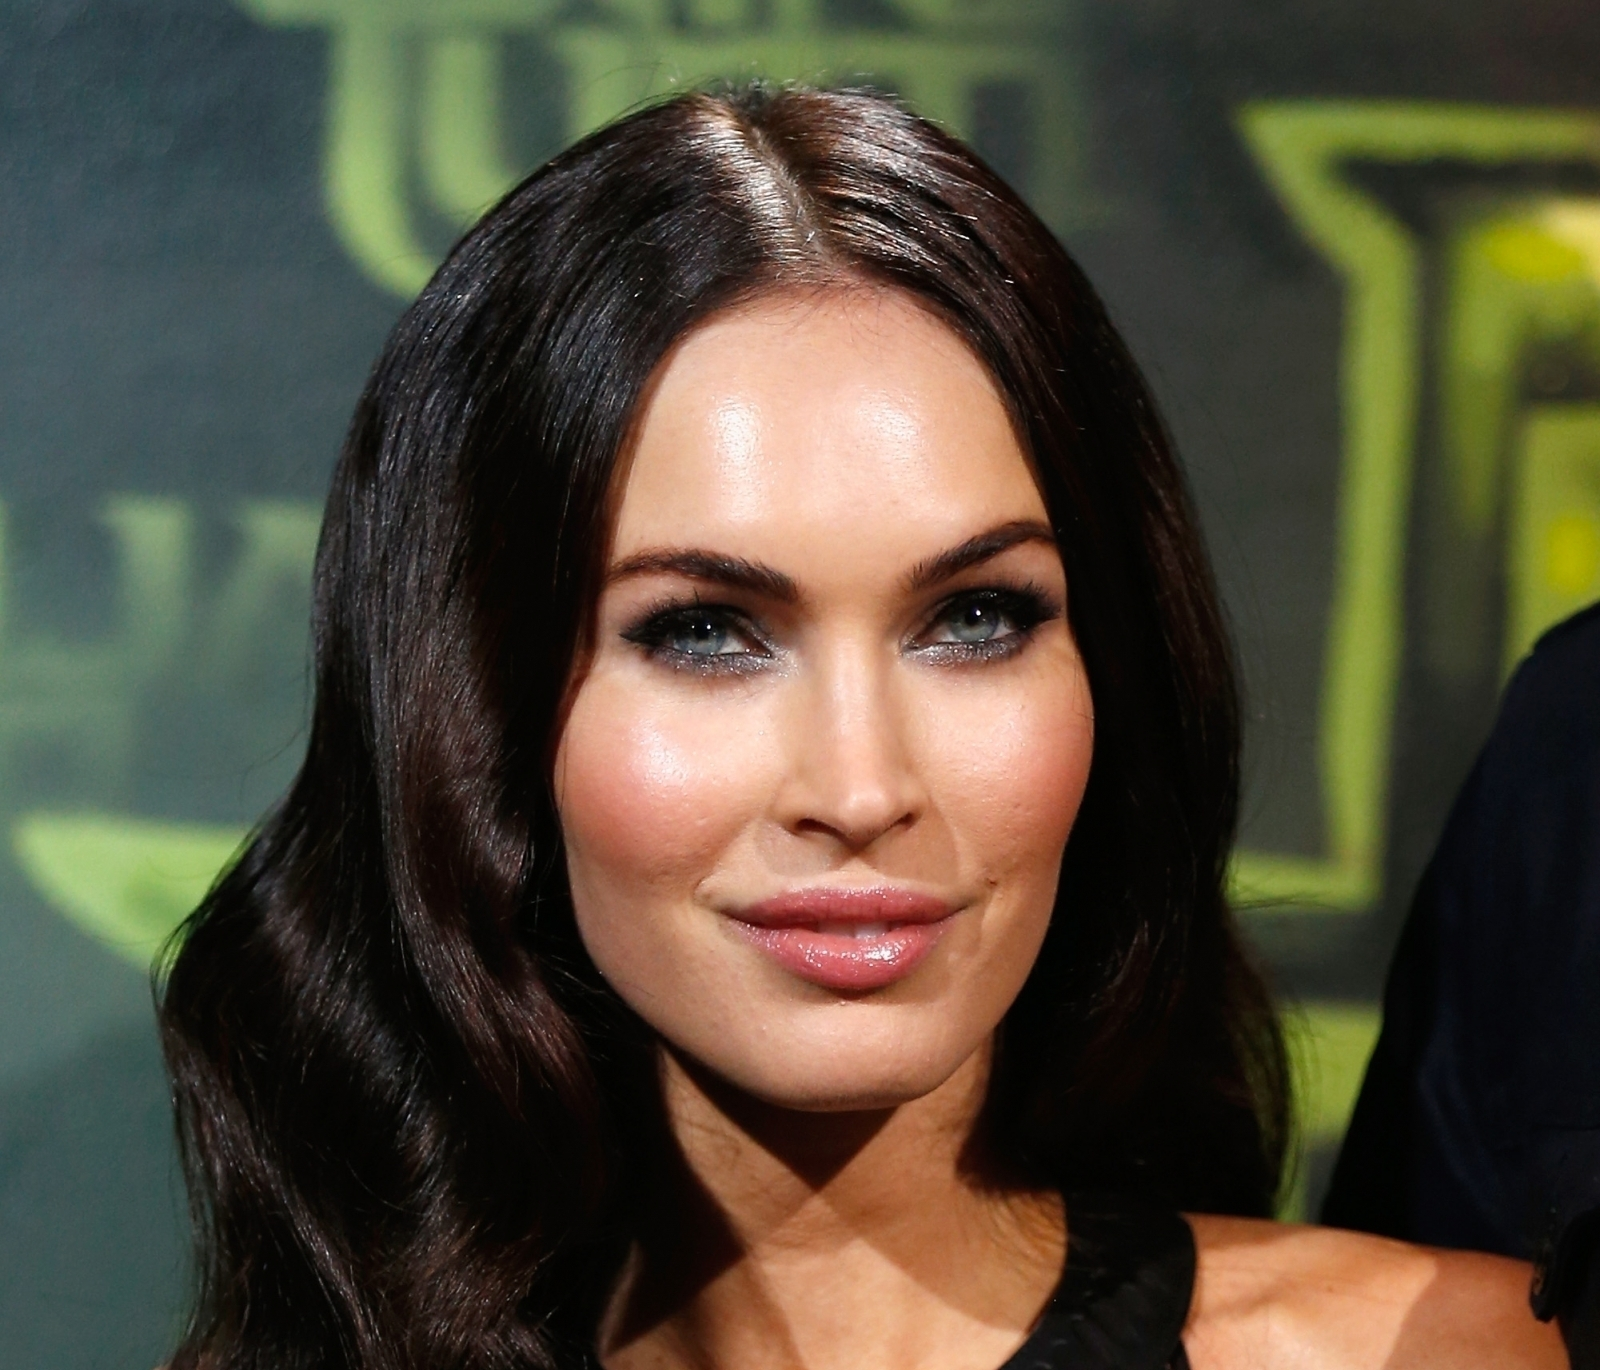 Megan Fox is a nearly unrecognizable famous person after plastic surgery